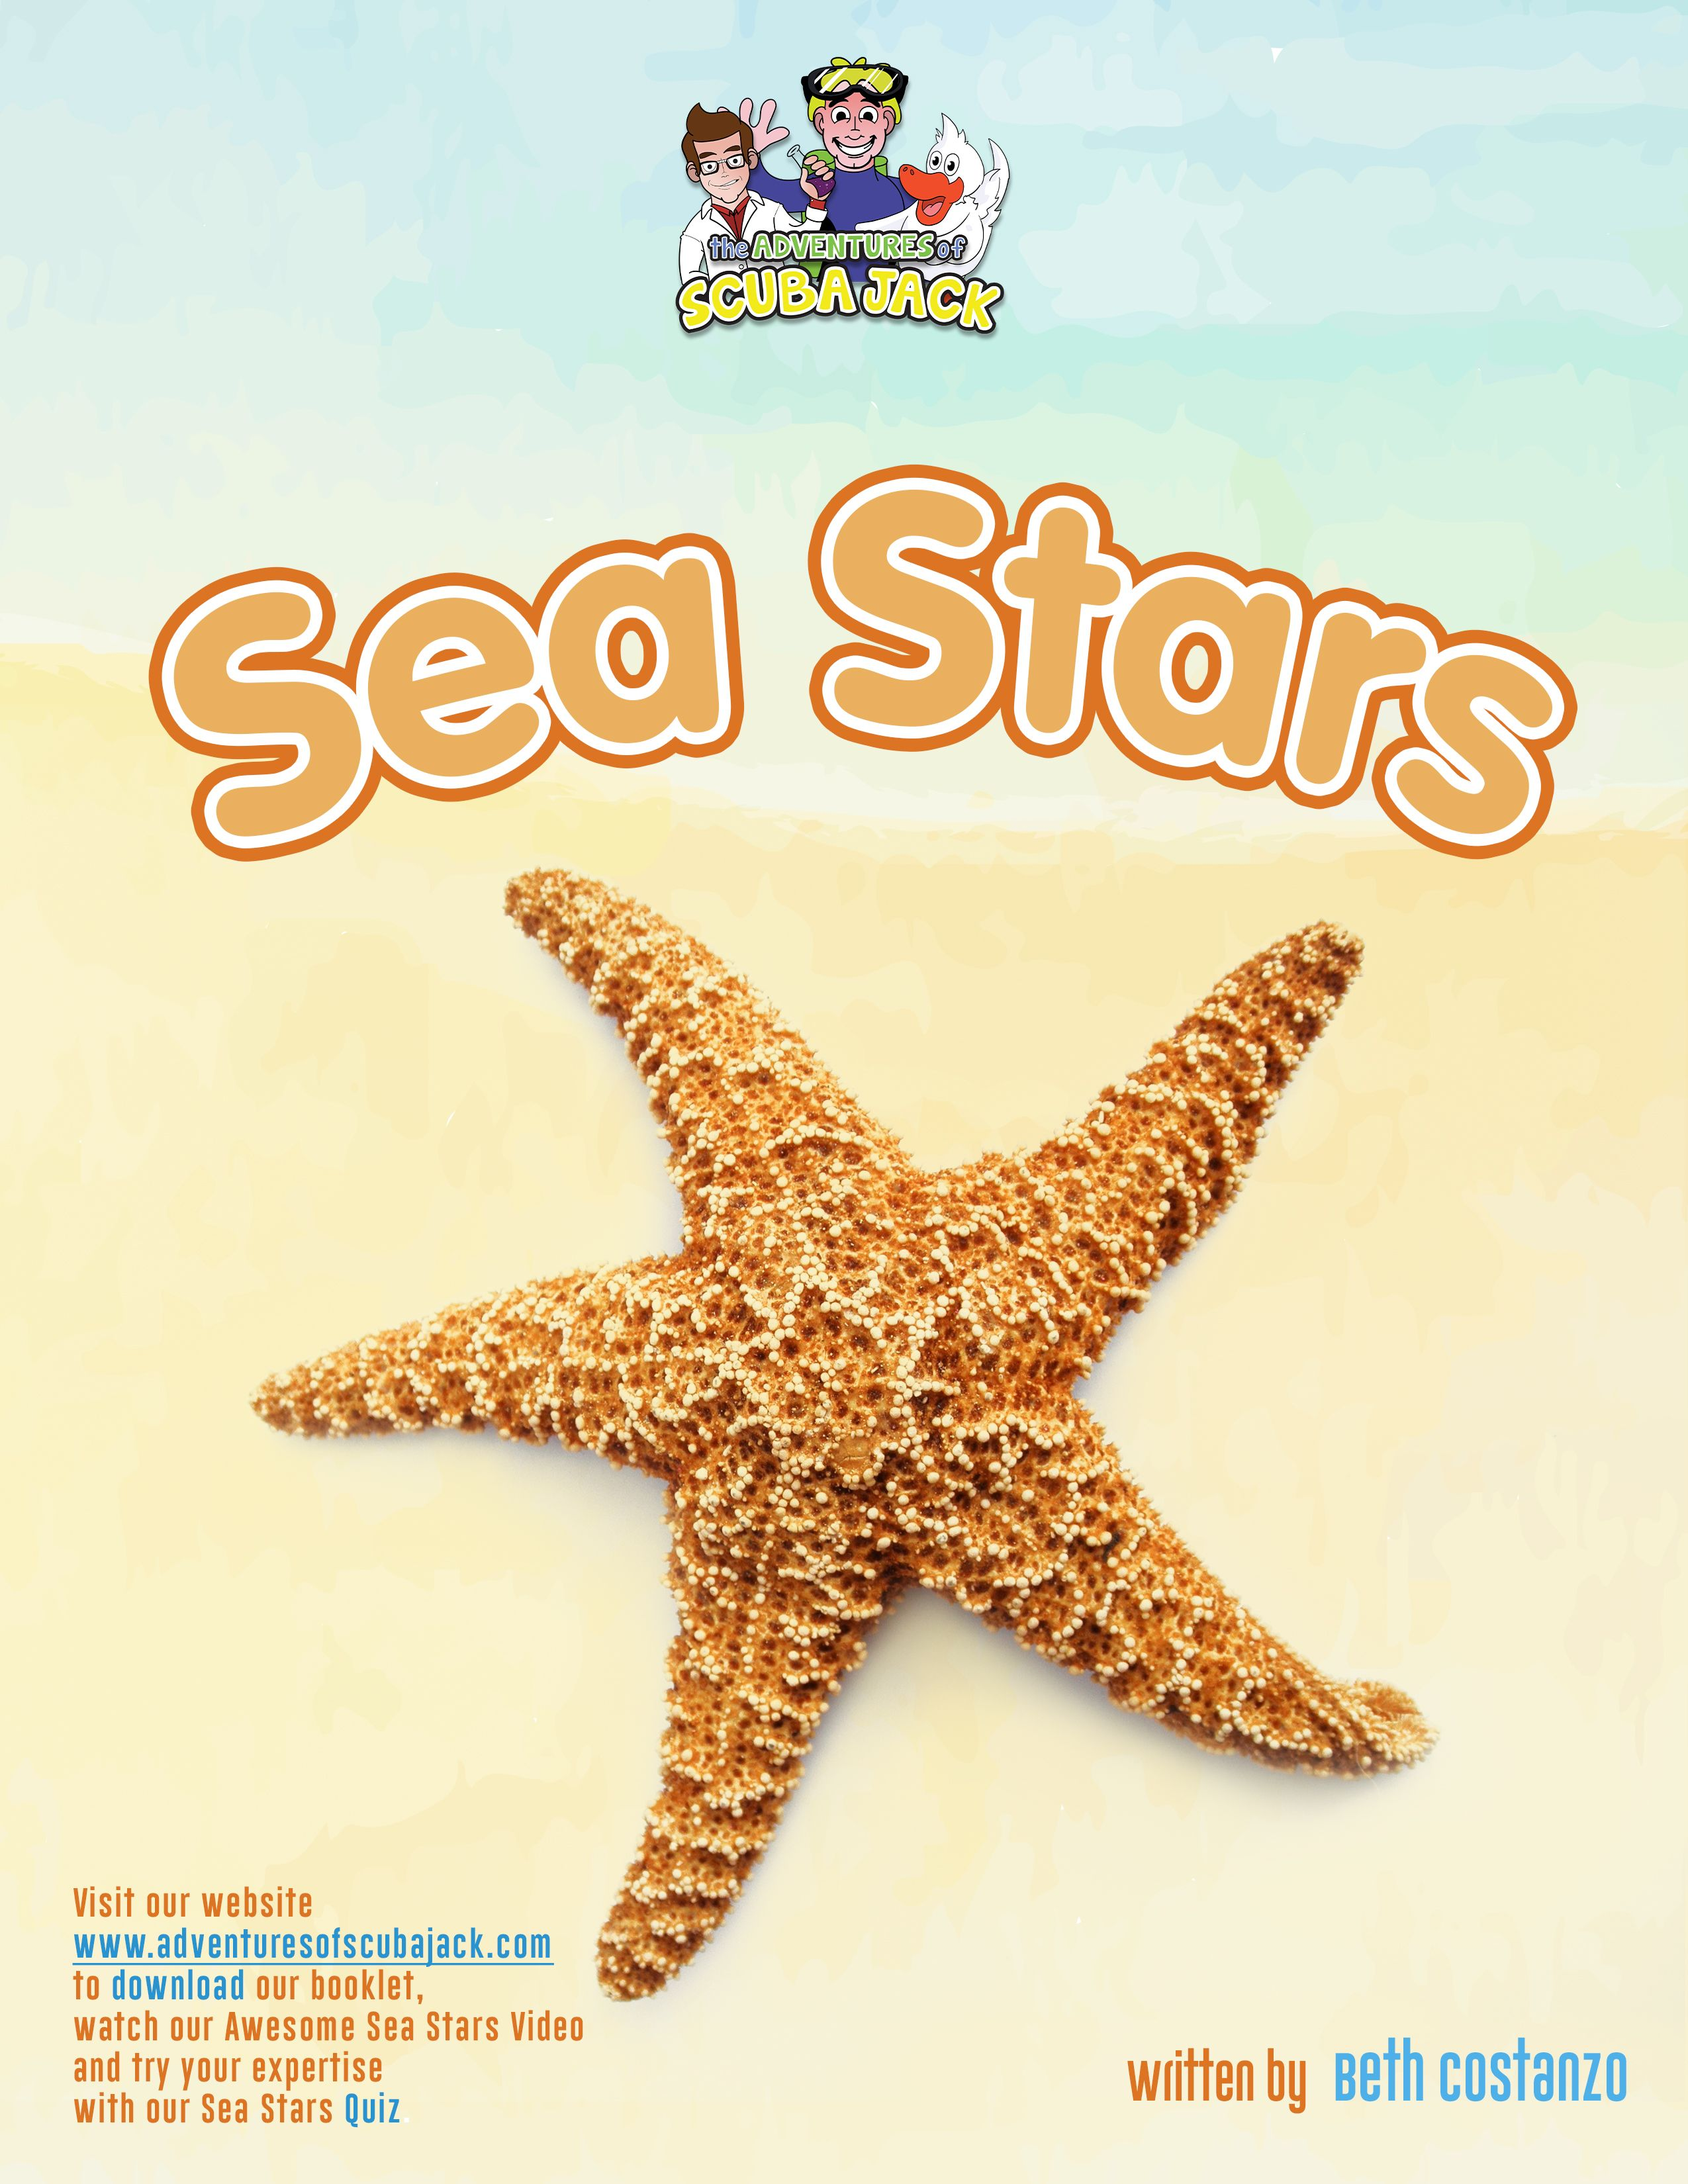 Sea Stars Educational Booklet For Kids In